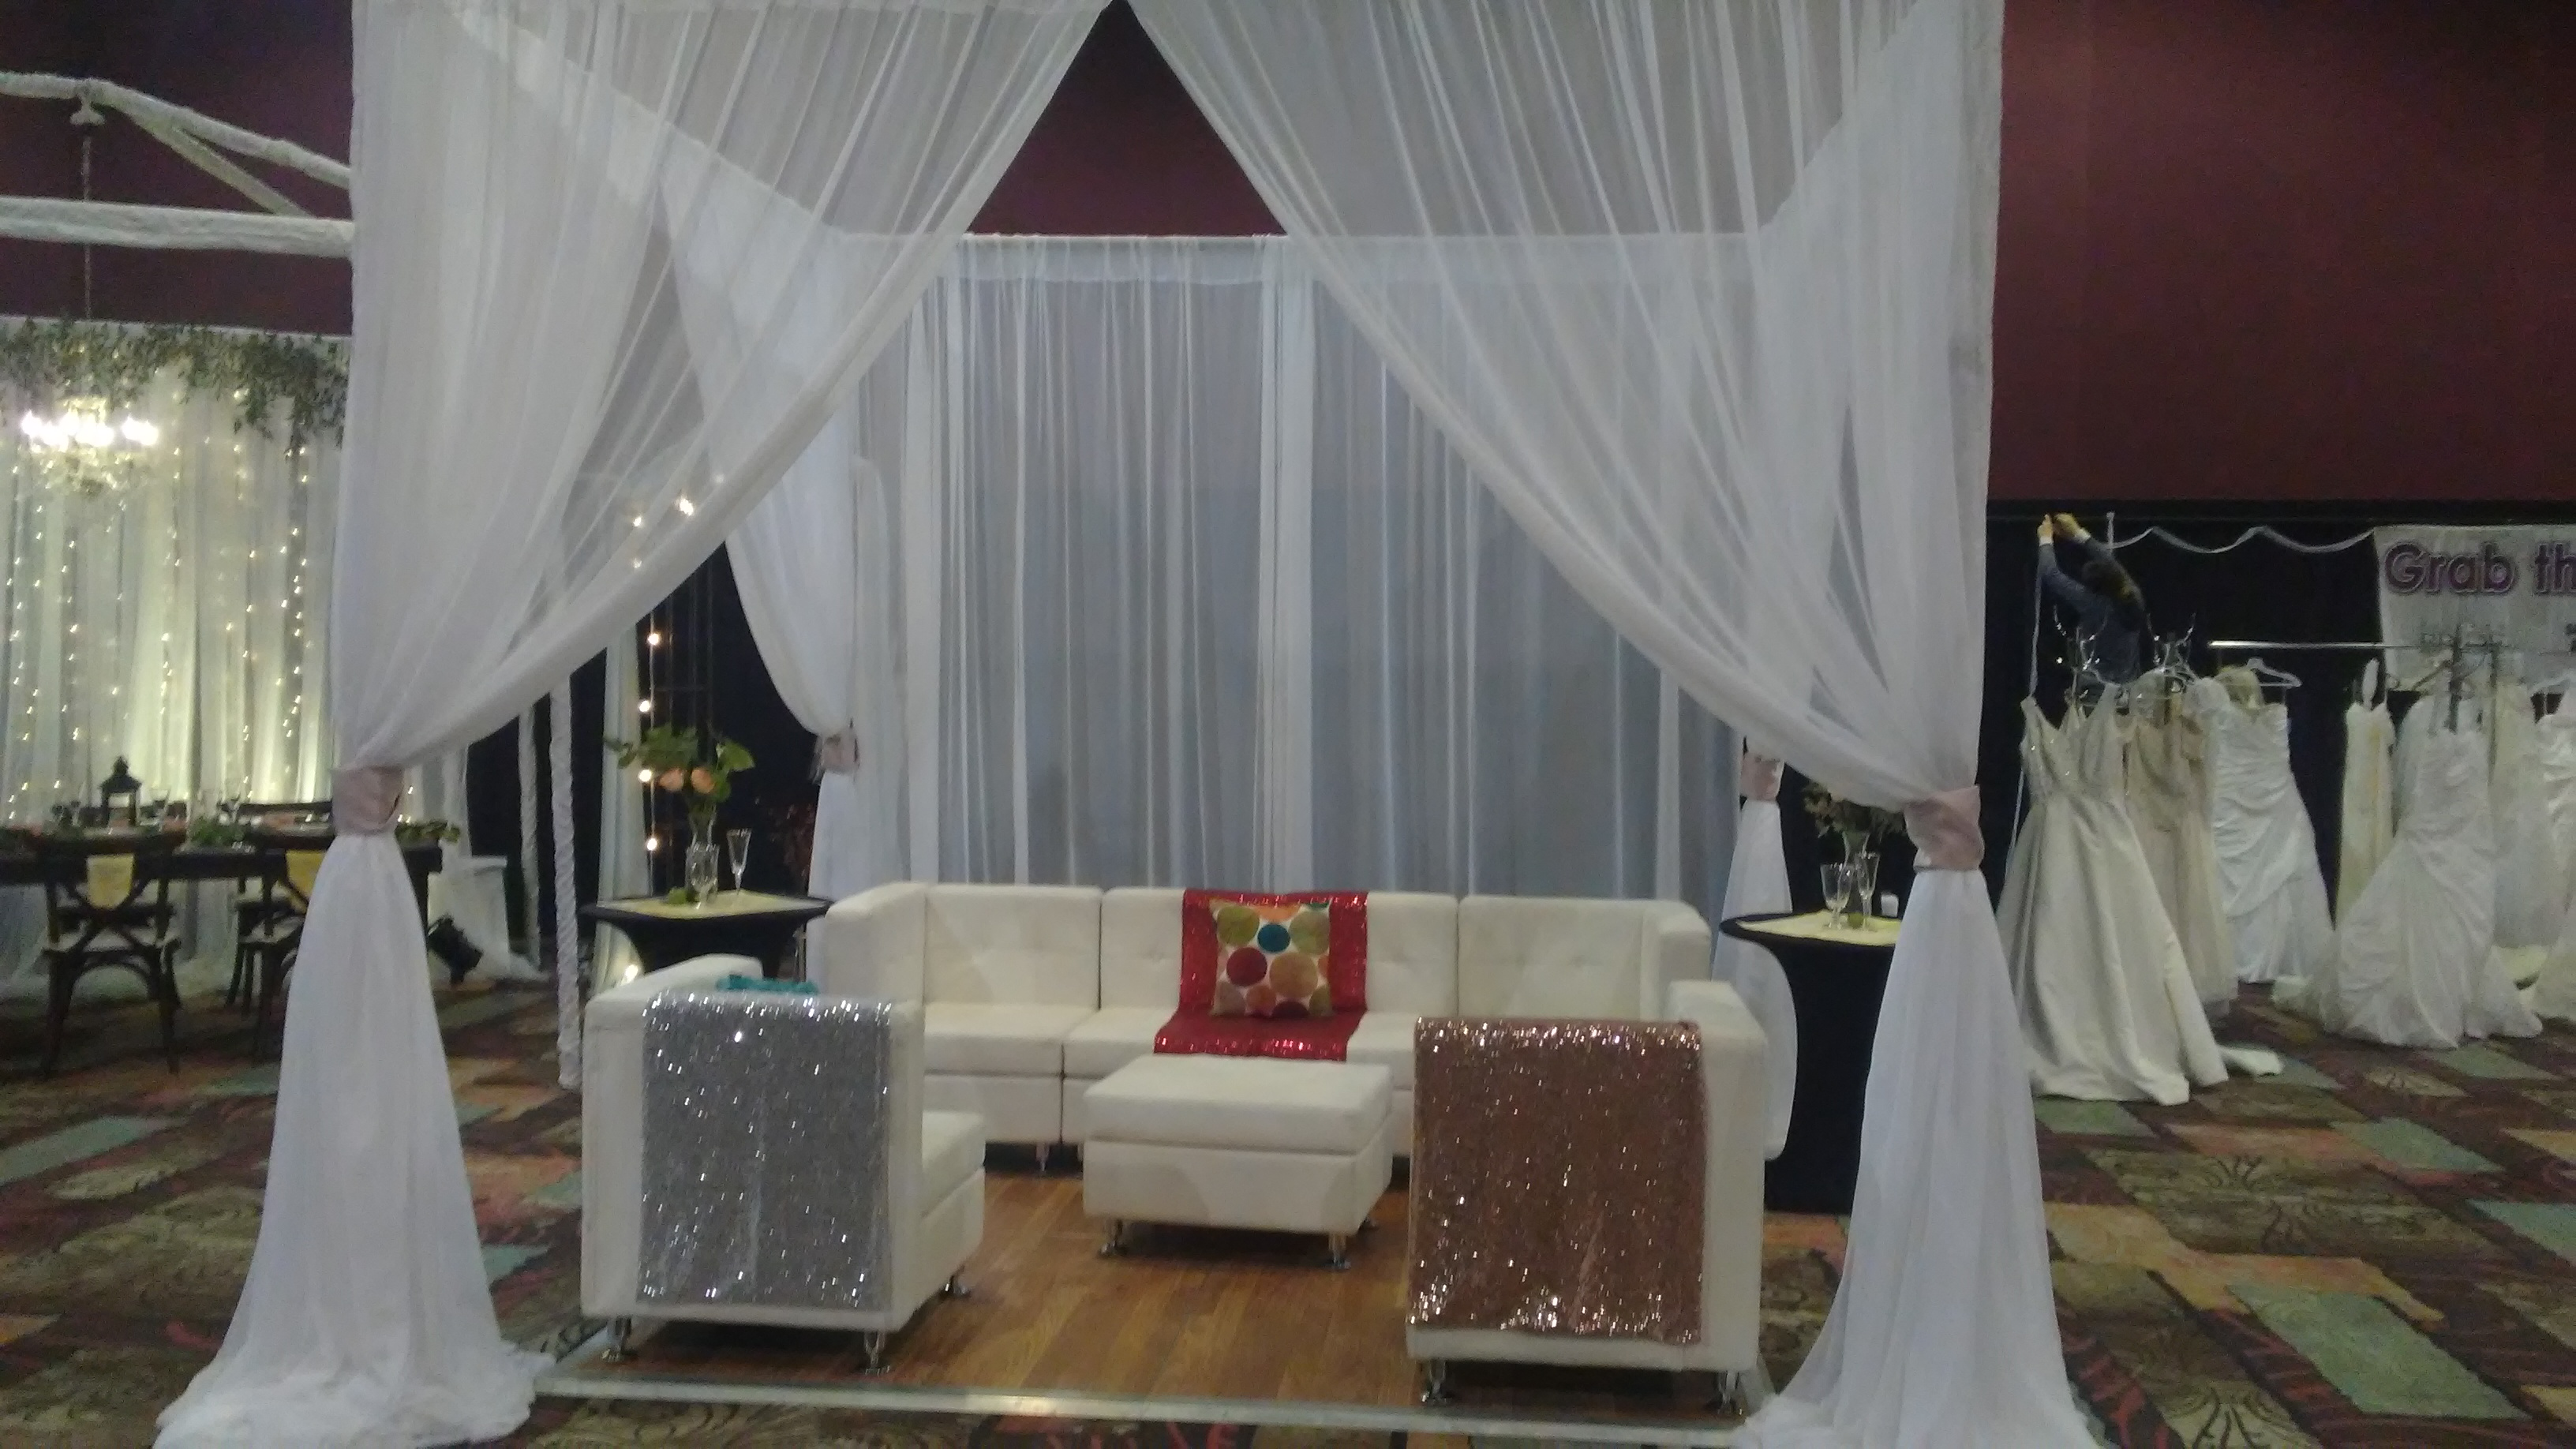 White mandap for ethnic traditions 12' tall